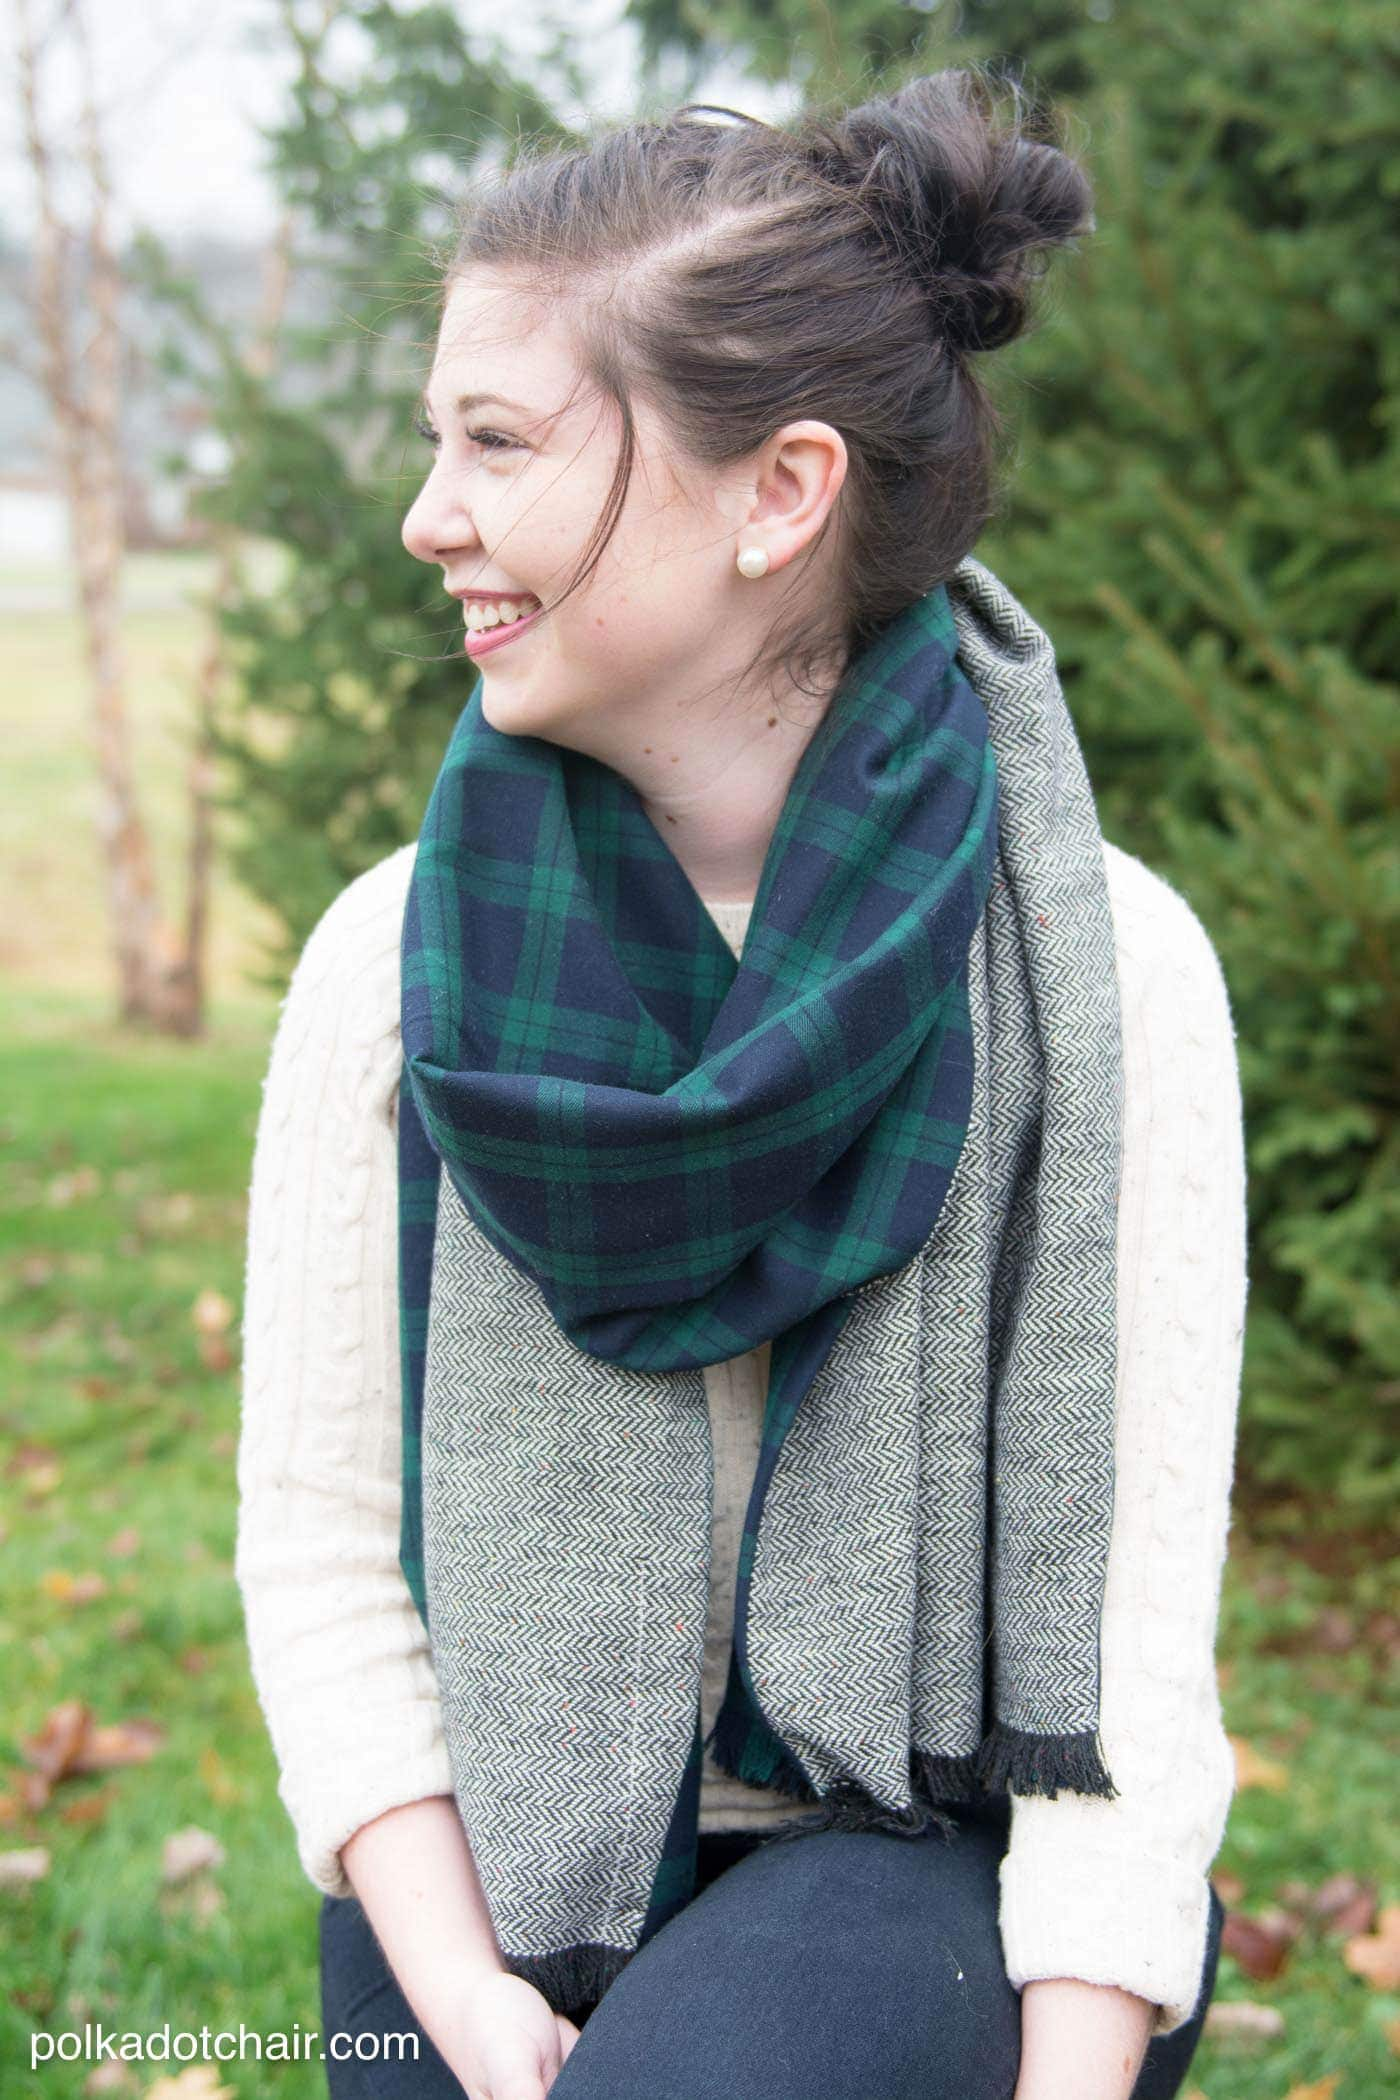 Diy winter scarf tutorial on polkadotchair free sewing pattern for diy oversized winter wool scarf with fringe looks so jeuxipadfo Images